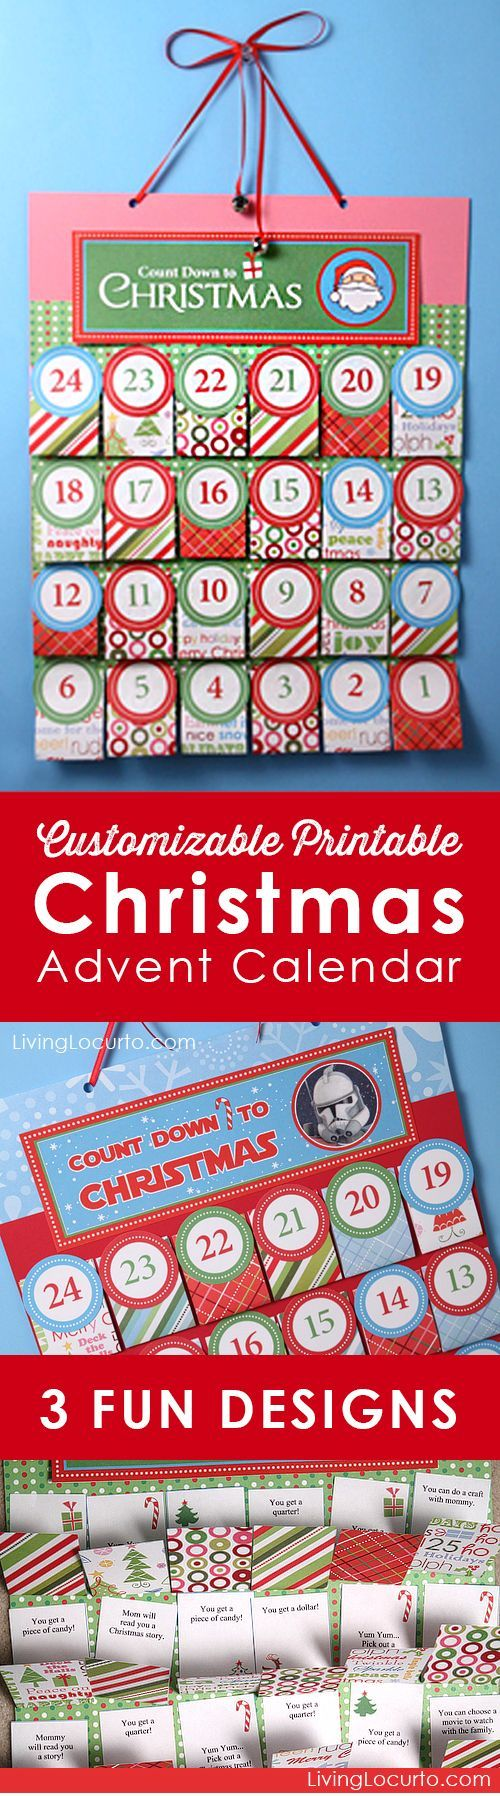 Printable DIY Christmas Advent Calendar. Personalize each day before printing! Choose from Santa, Nativity or Star Wars themes. Fun Holiday Paper craft for kids.